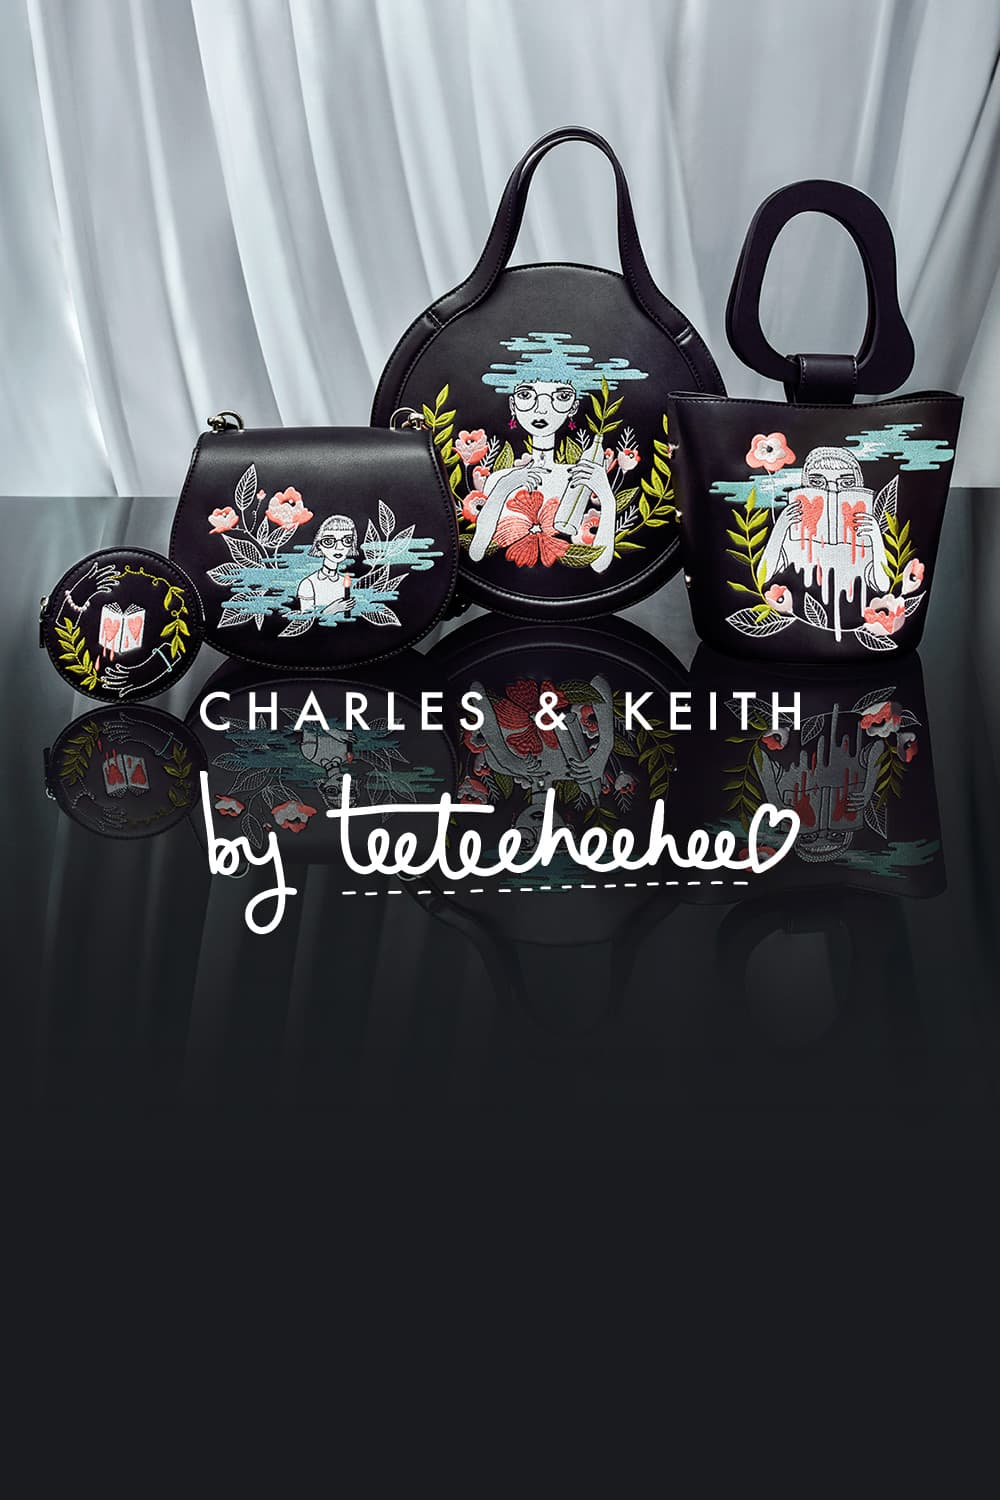 CHARLES & KEITH BY TEETEEHEEHEE Full Collection: Women's Black Embroidered Round Tote Bag, Black Sculptural Handle Embroidered Bucket Bag, Black Embroidered Crossbody Bag and Black Embroidered Round Pouch- CHARLES & KEITH